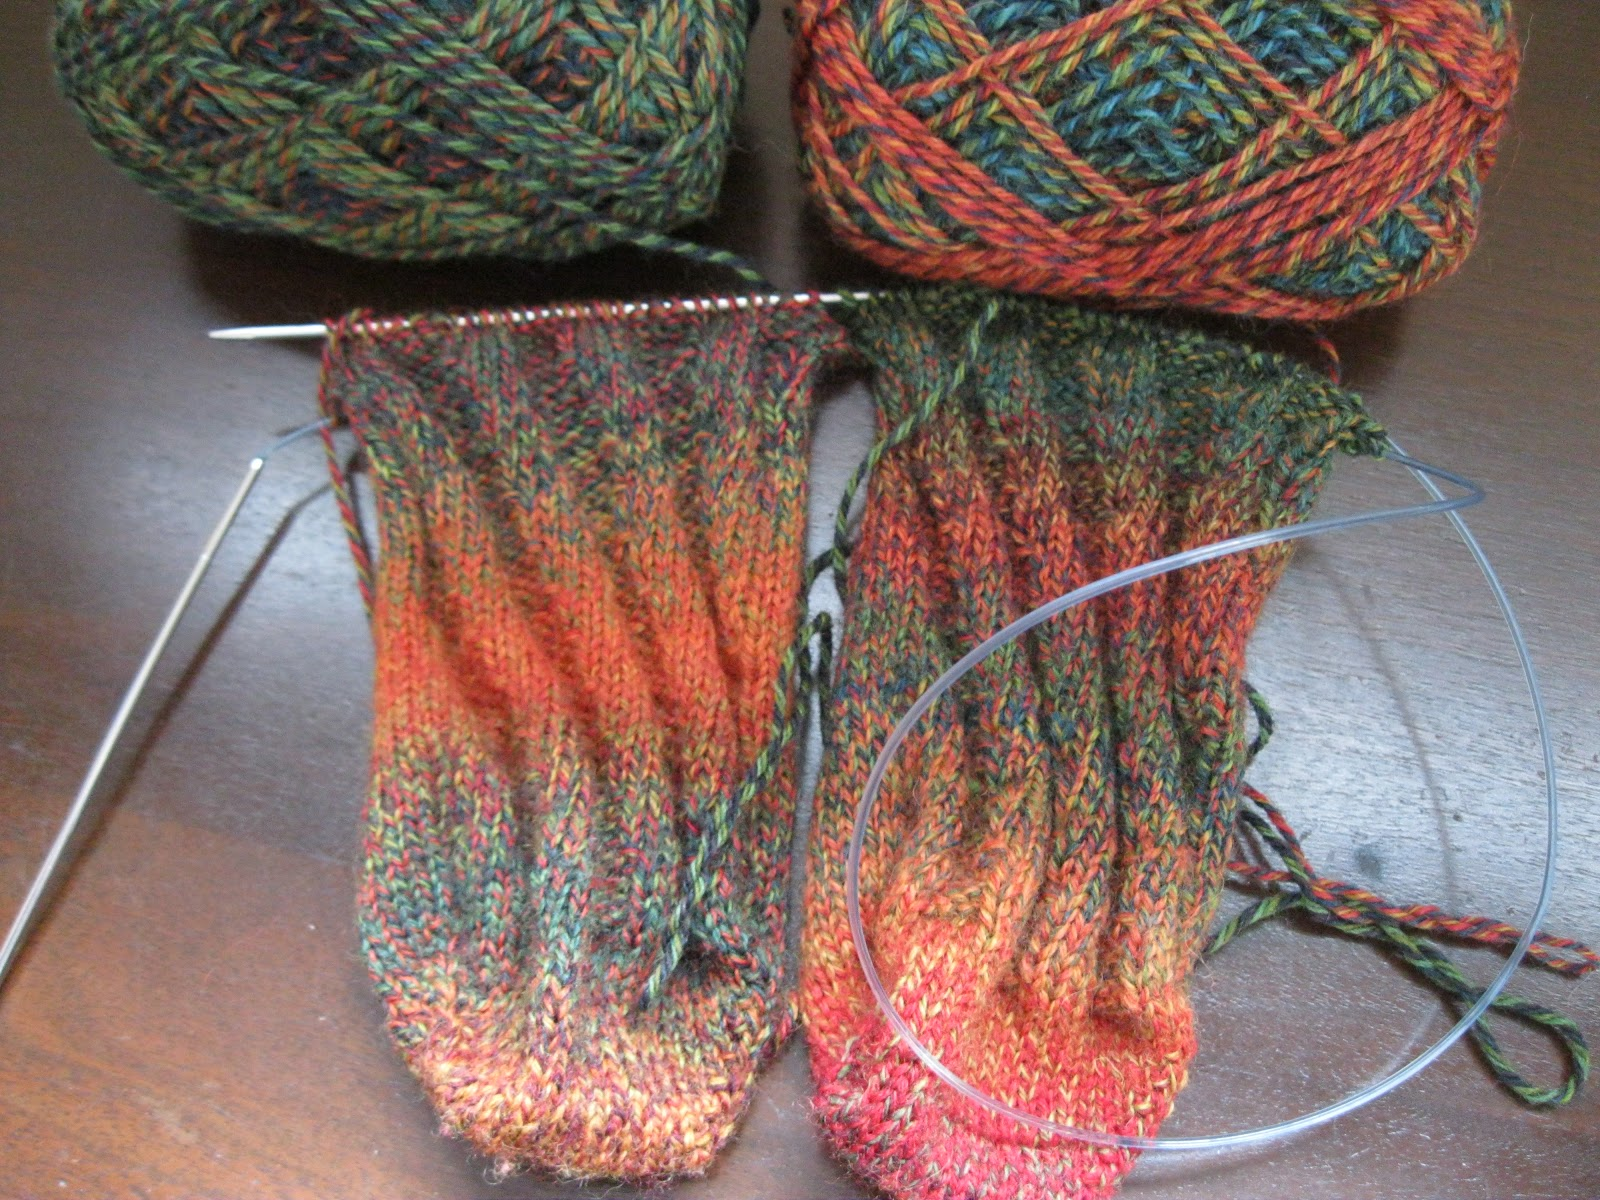 Spiral Socks Knitting Pattern : Perhaps I Should Have Been Supervised...: Spiral Socks